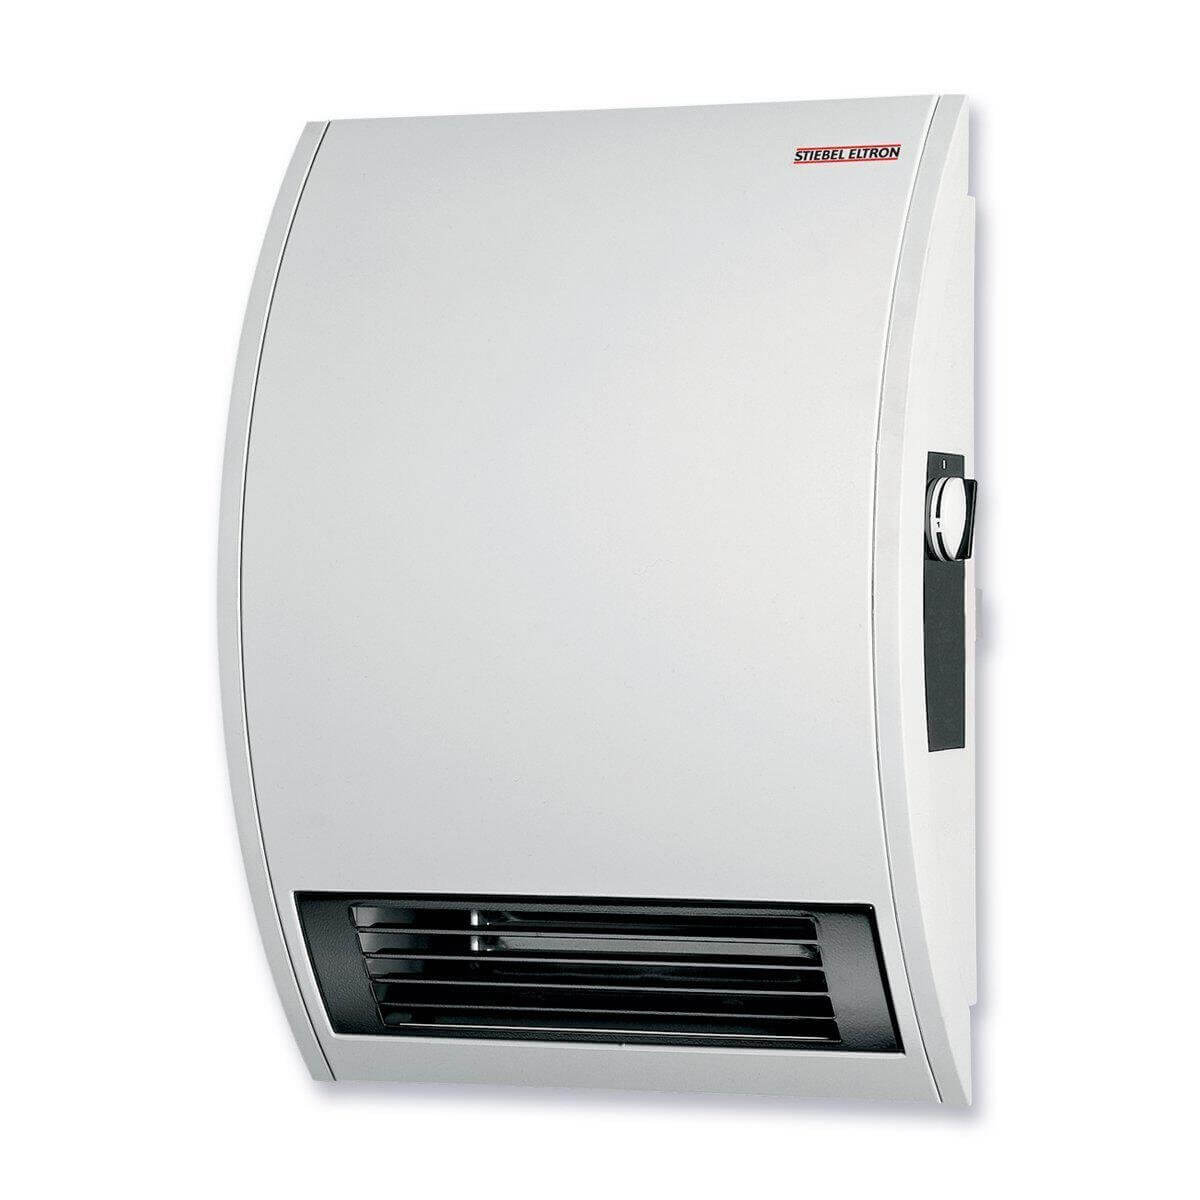 Stiebel Eltron CK 15E 120 Volt 1500 Watts Wall Mounted Electric Fan Heater